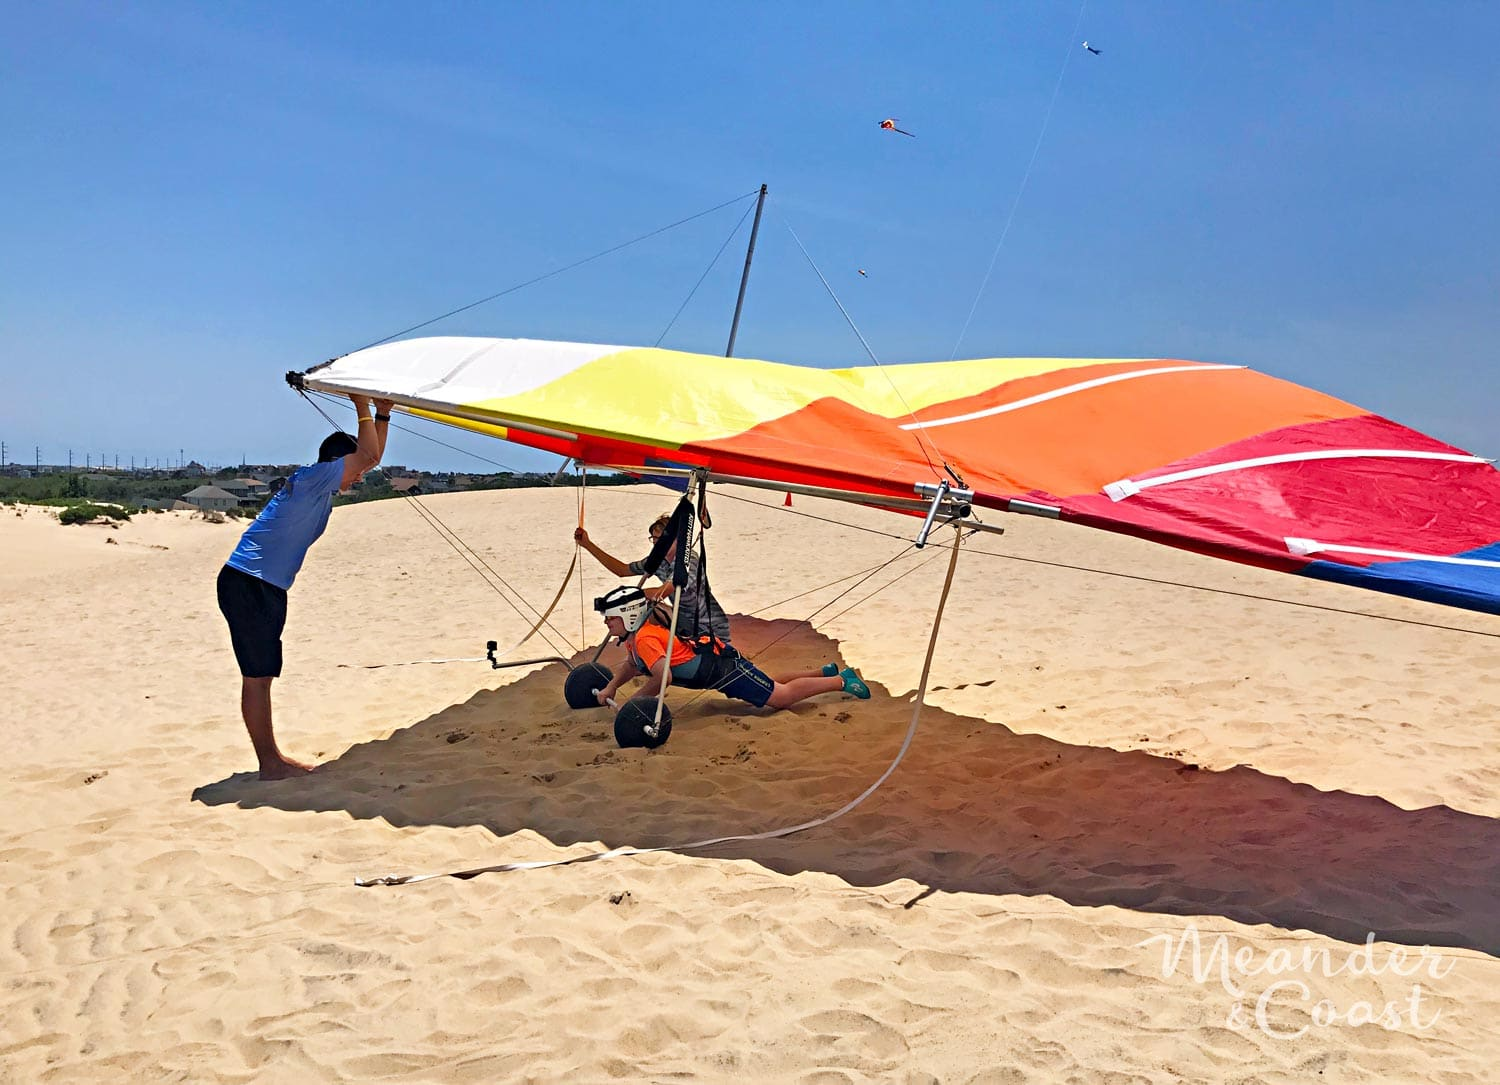 This looks like so much fun! Outer Banks hang gliding lesson at Jockey's Ridge State Park, NC. | Meander & Coast #hanggliding #dunehanggliding #hangglidinglessons #flyinglessons #outerbanks #nagshead #kittyhawk #northcarolina #familyvacation #travel #adventure #teentravel #familytravel